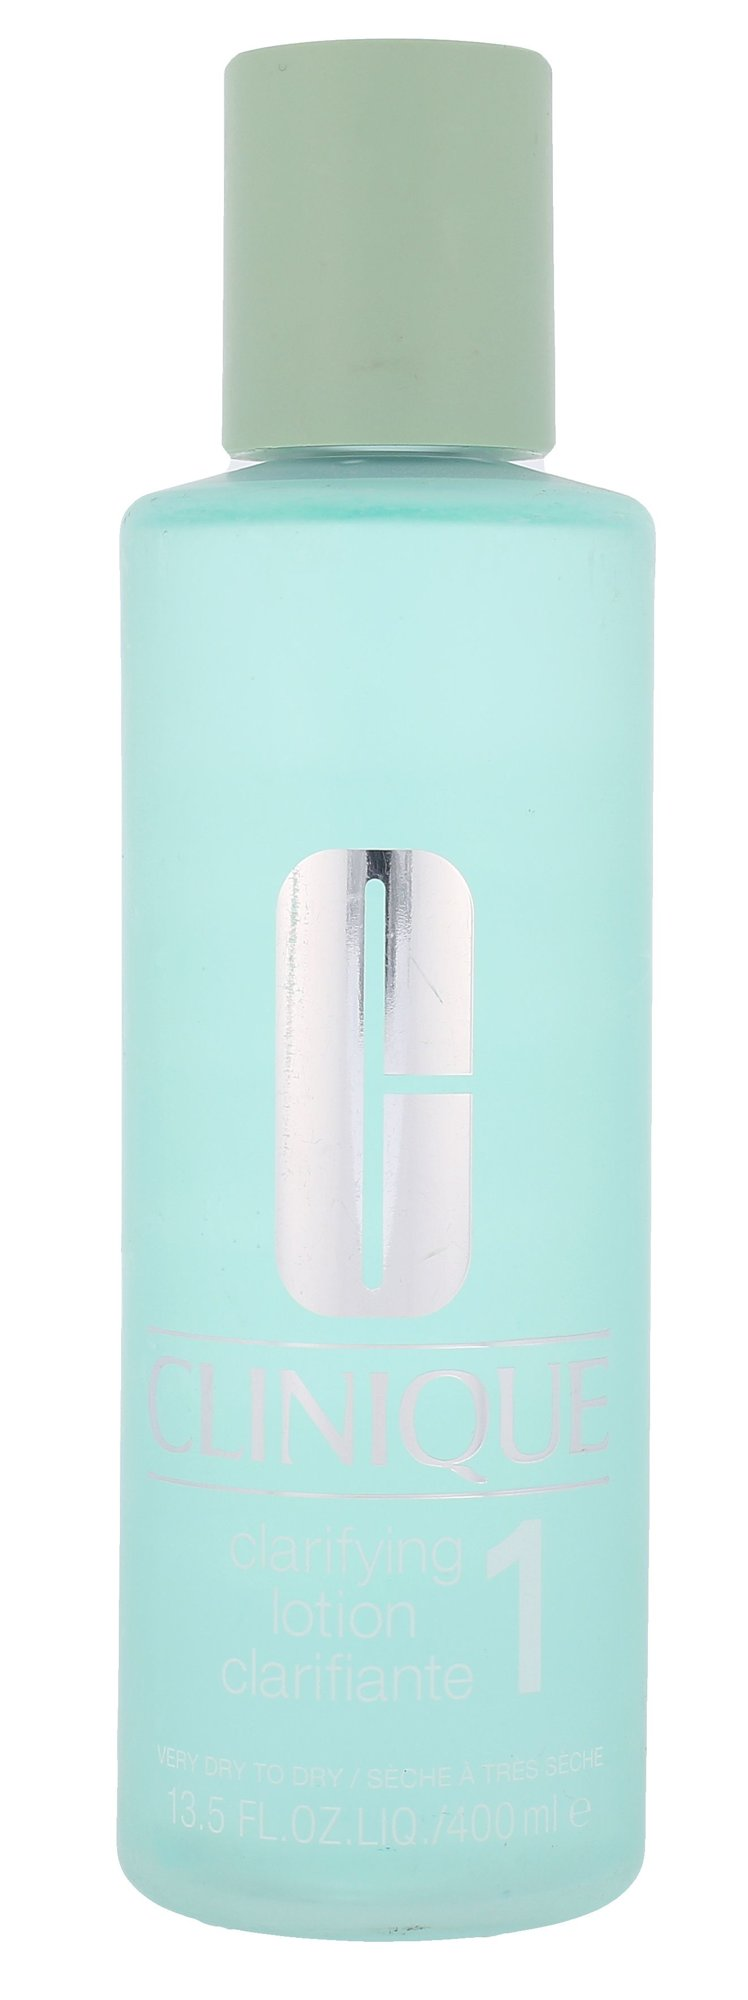 Clinique 3-Step Skin Care 1 Cosmetic 400ml